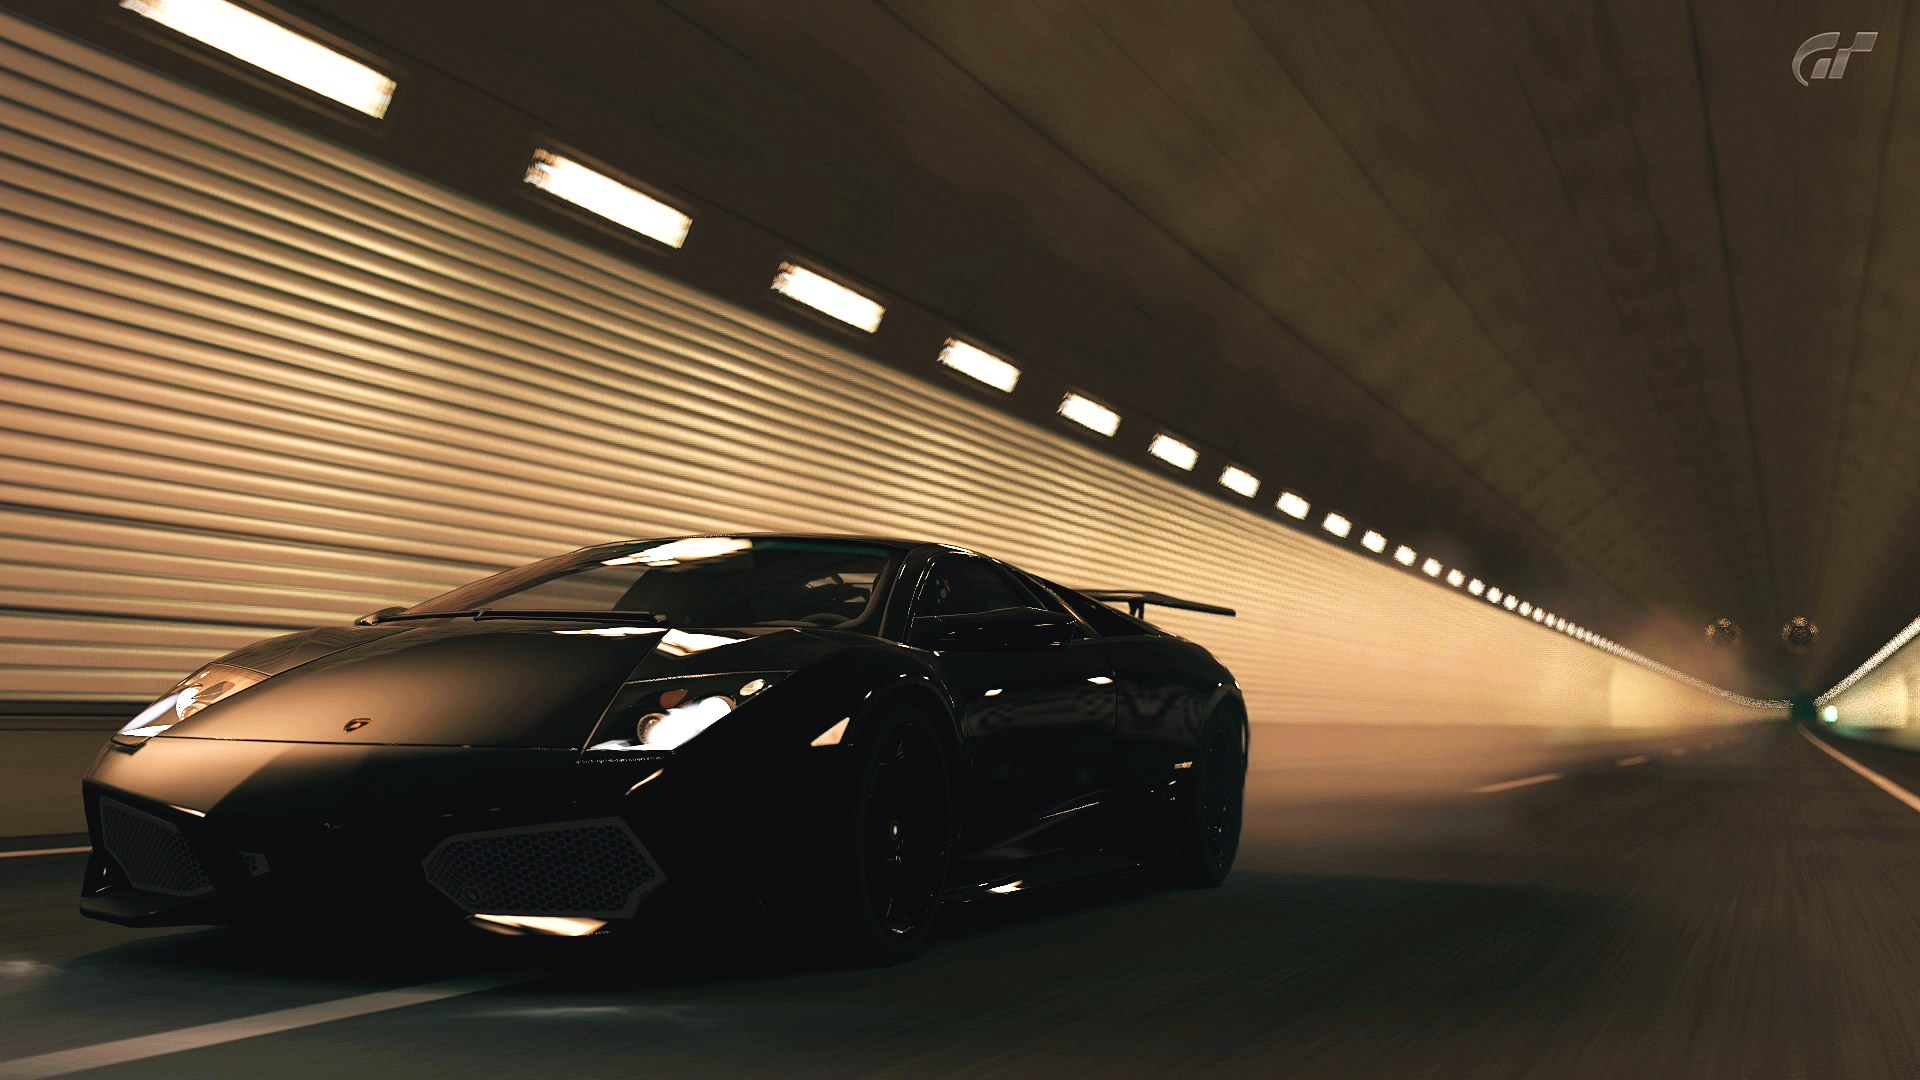 Lamborghini Car Tunnel Lights